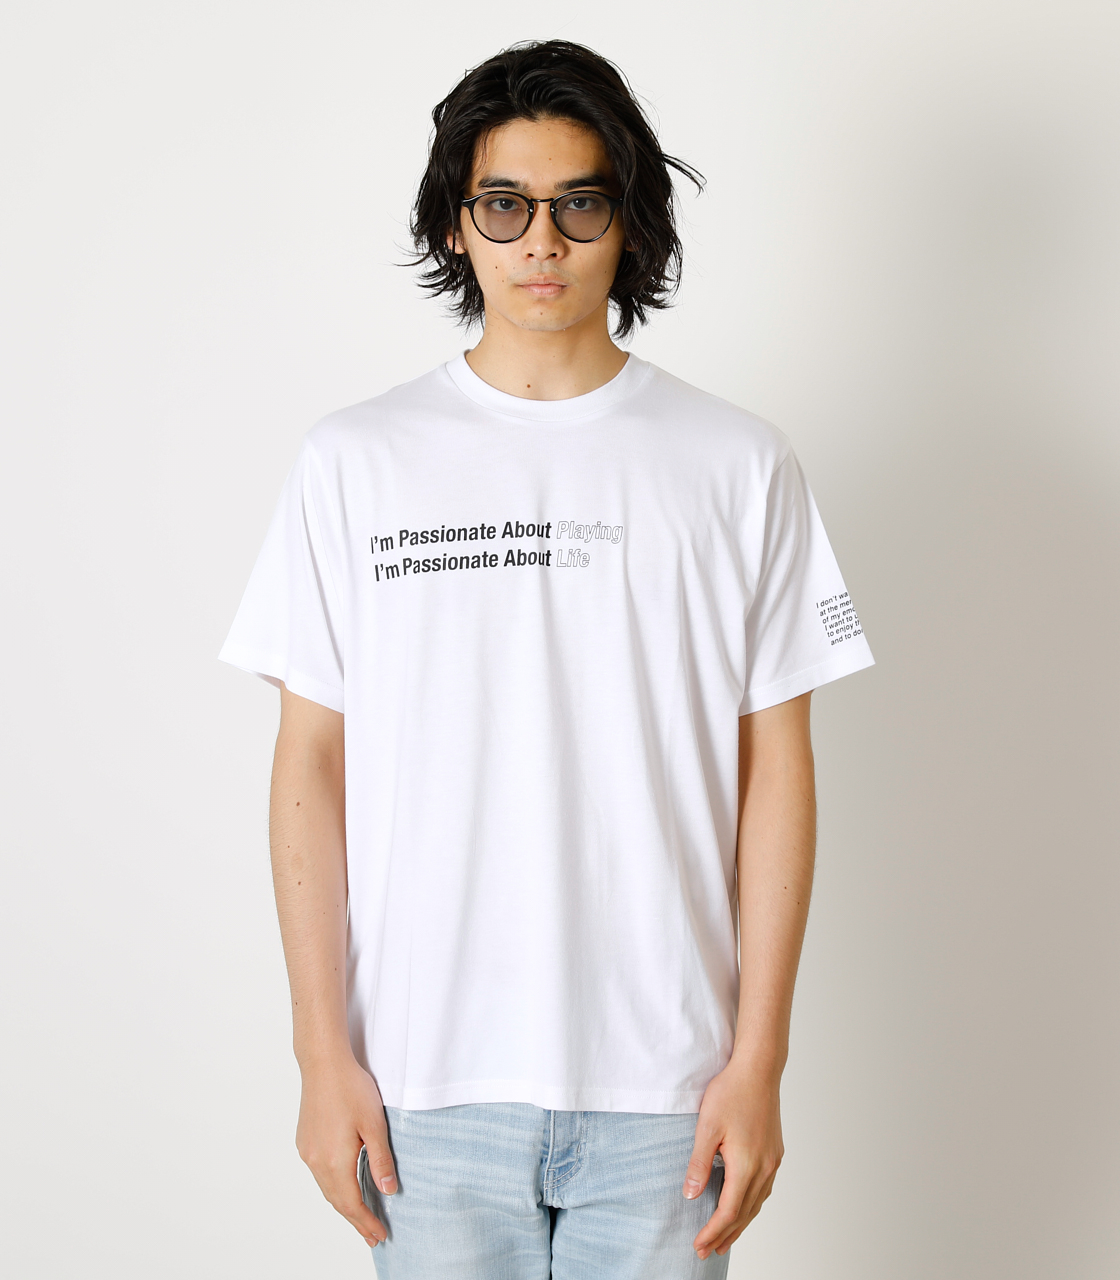 PASSIONATE ABOUT TEE/パッショネイトアバウトTシャツ 詳細画像 WHT 4